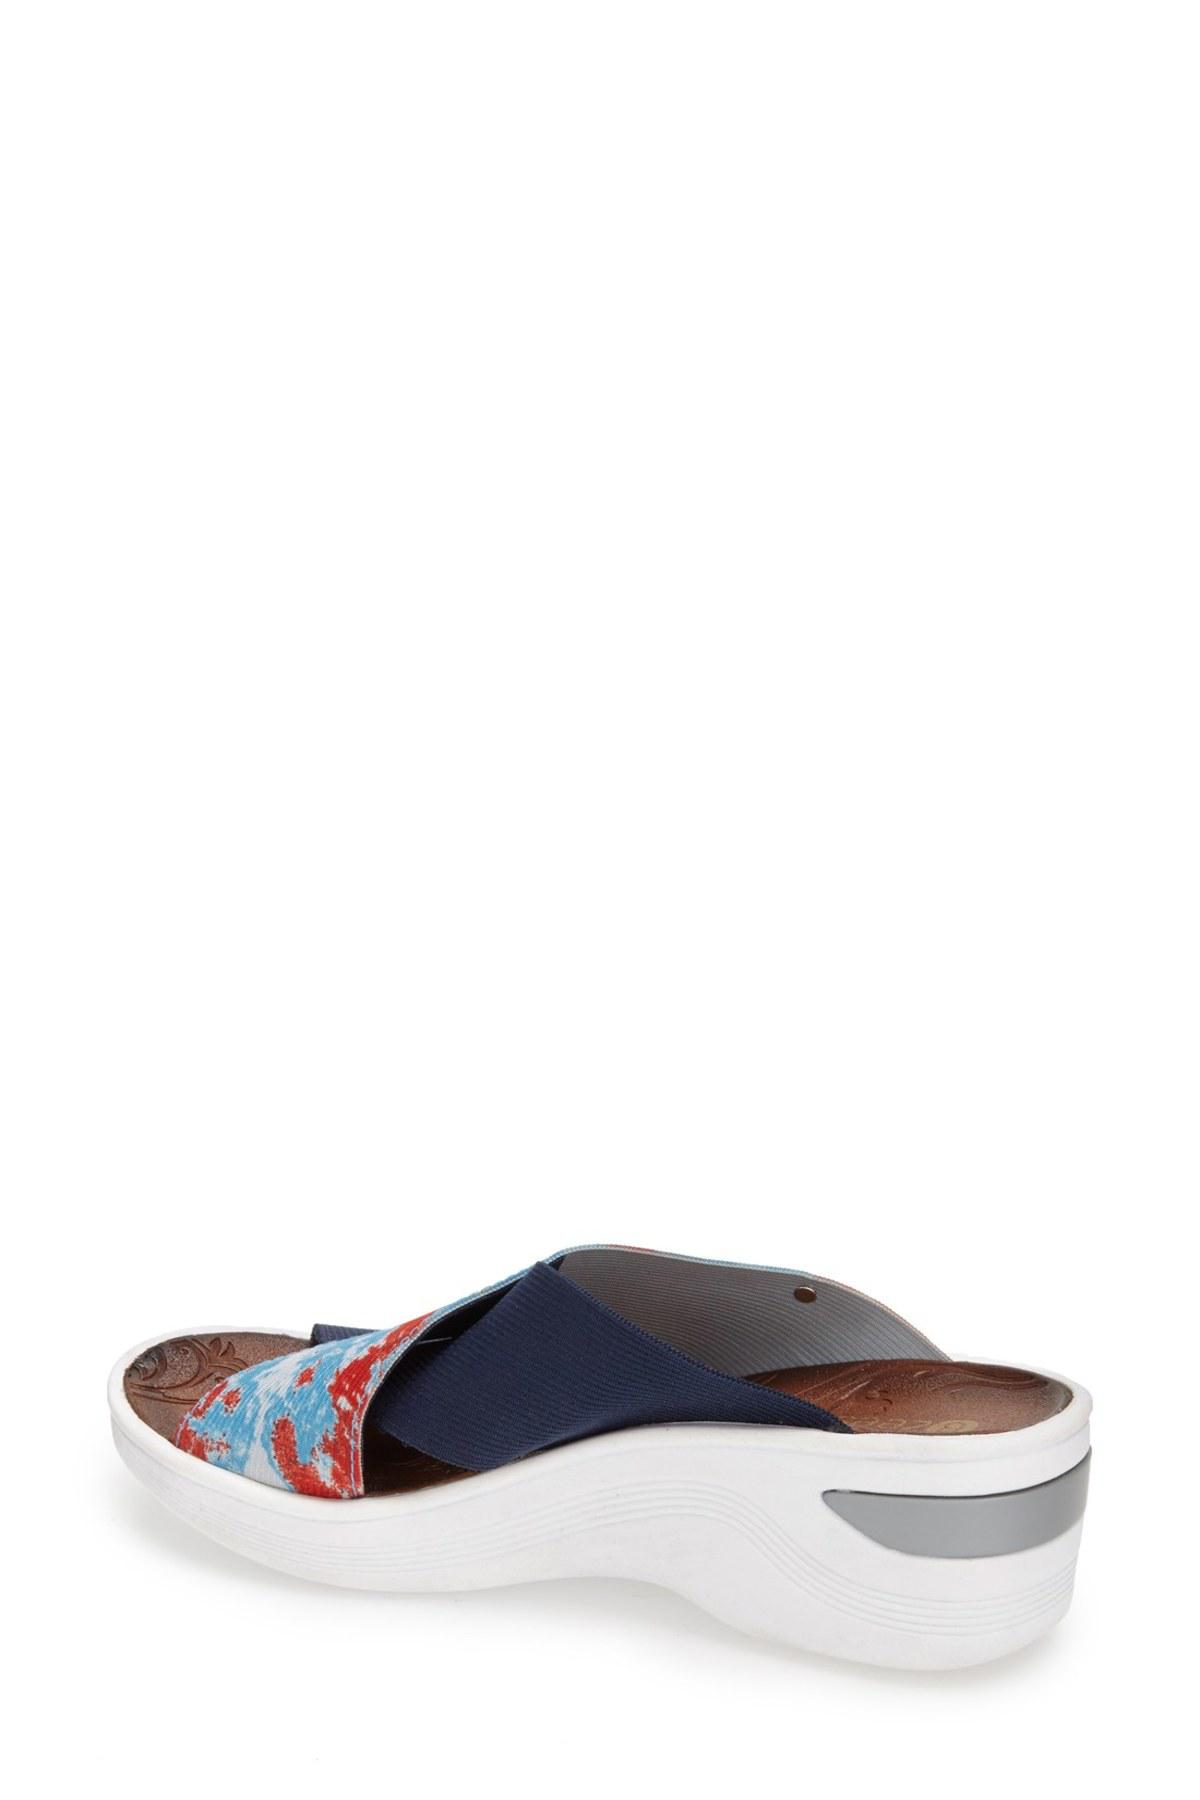 BZEES Desire Wedge Sandal - Wide Width Available 6goABq